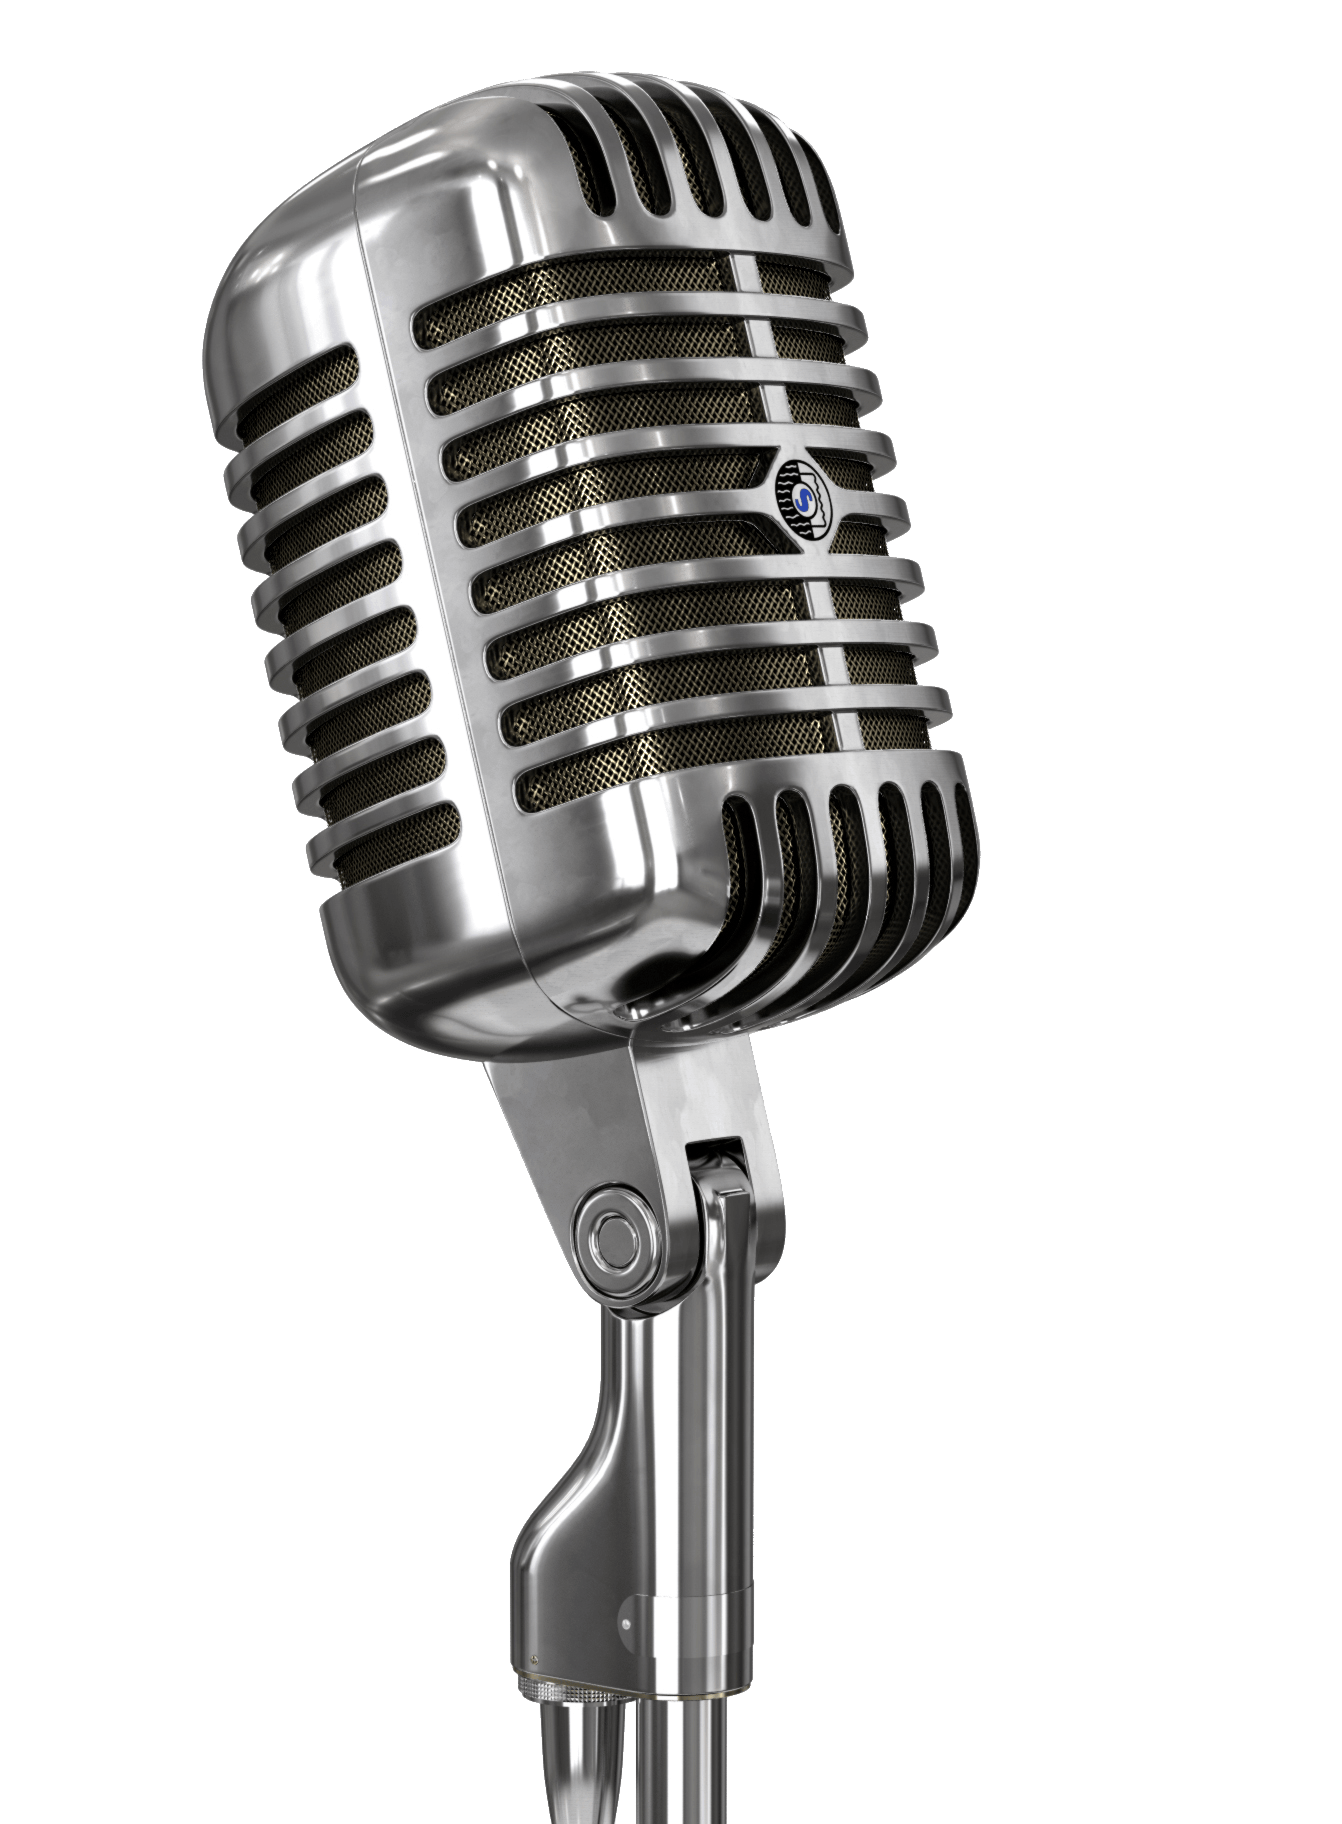 Vintage and stand mic. Microphone clipart announcement